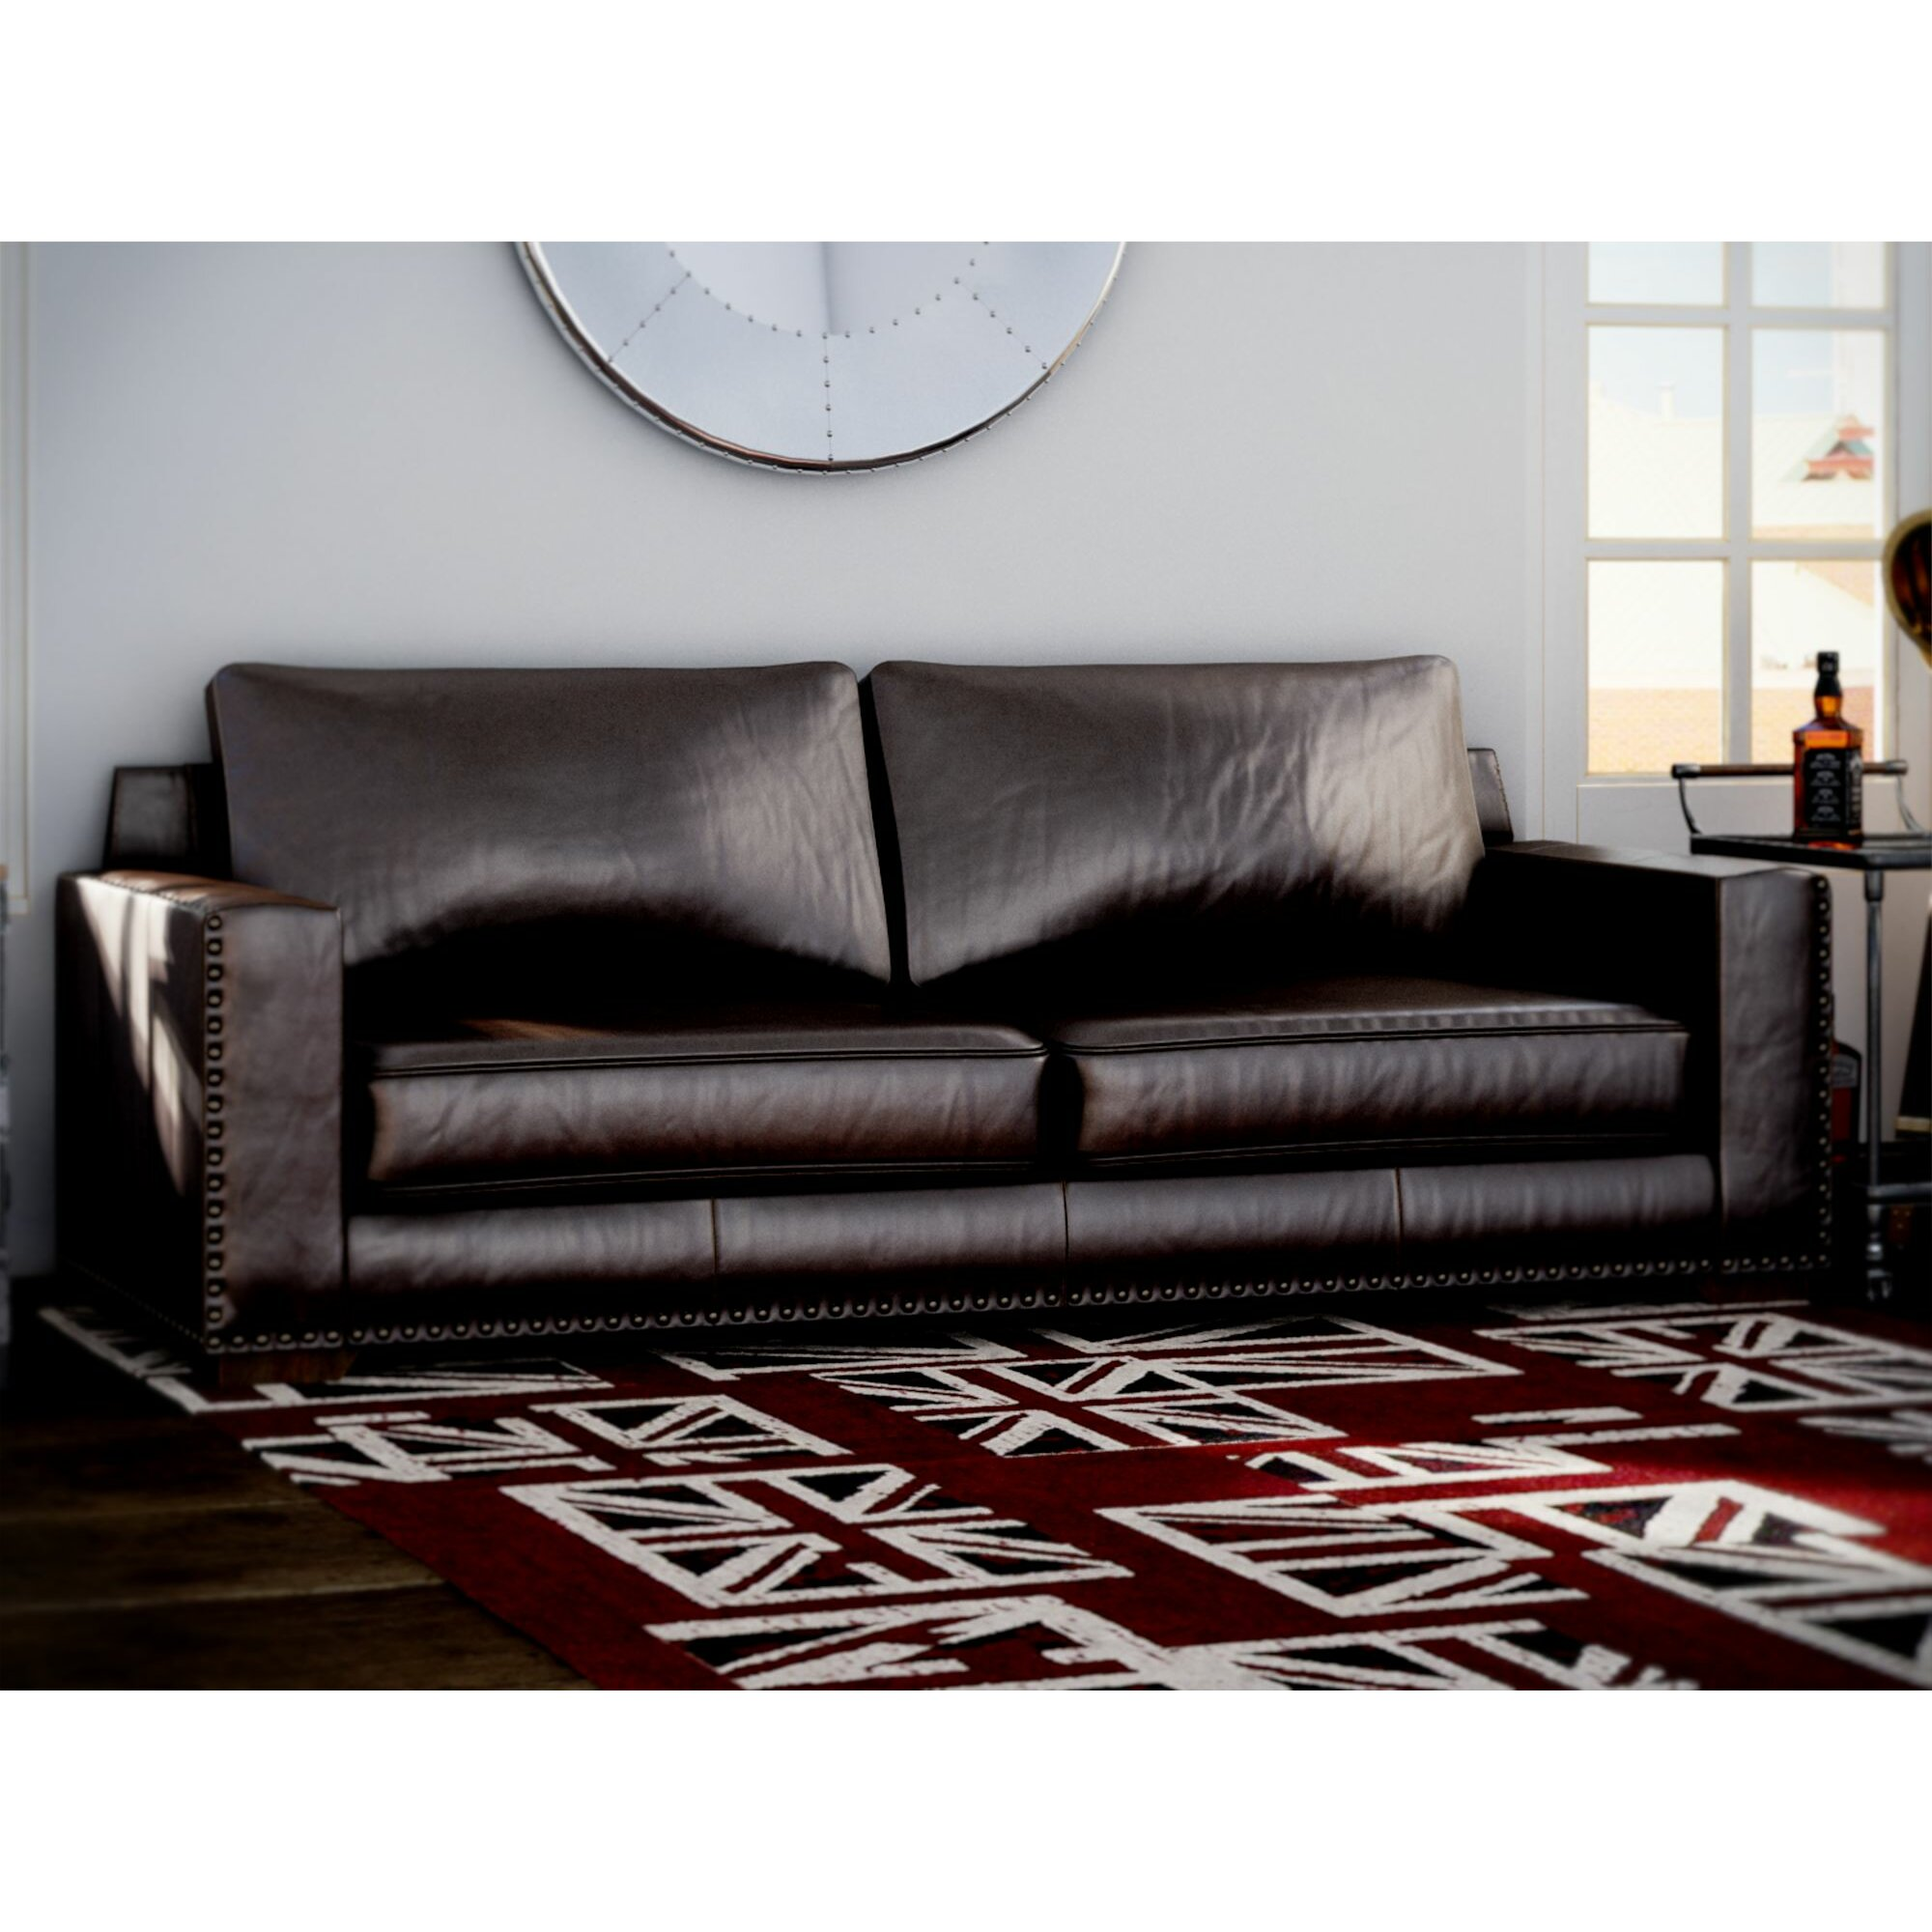 Trent sofa bed trent sofa bed trent sofa sofa so trent for Sofa bed heaven